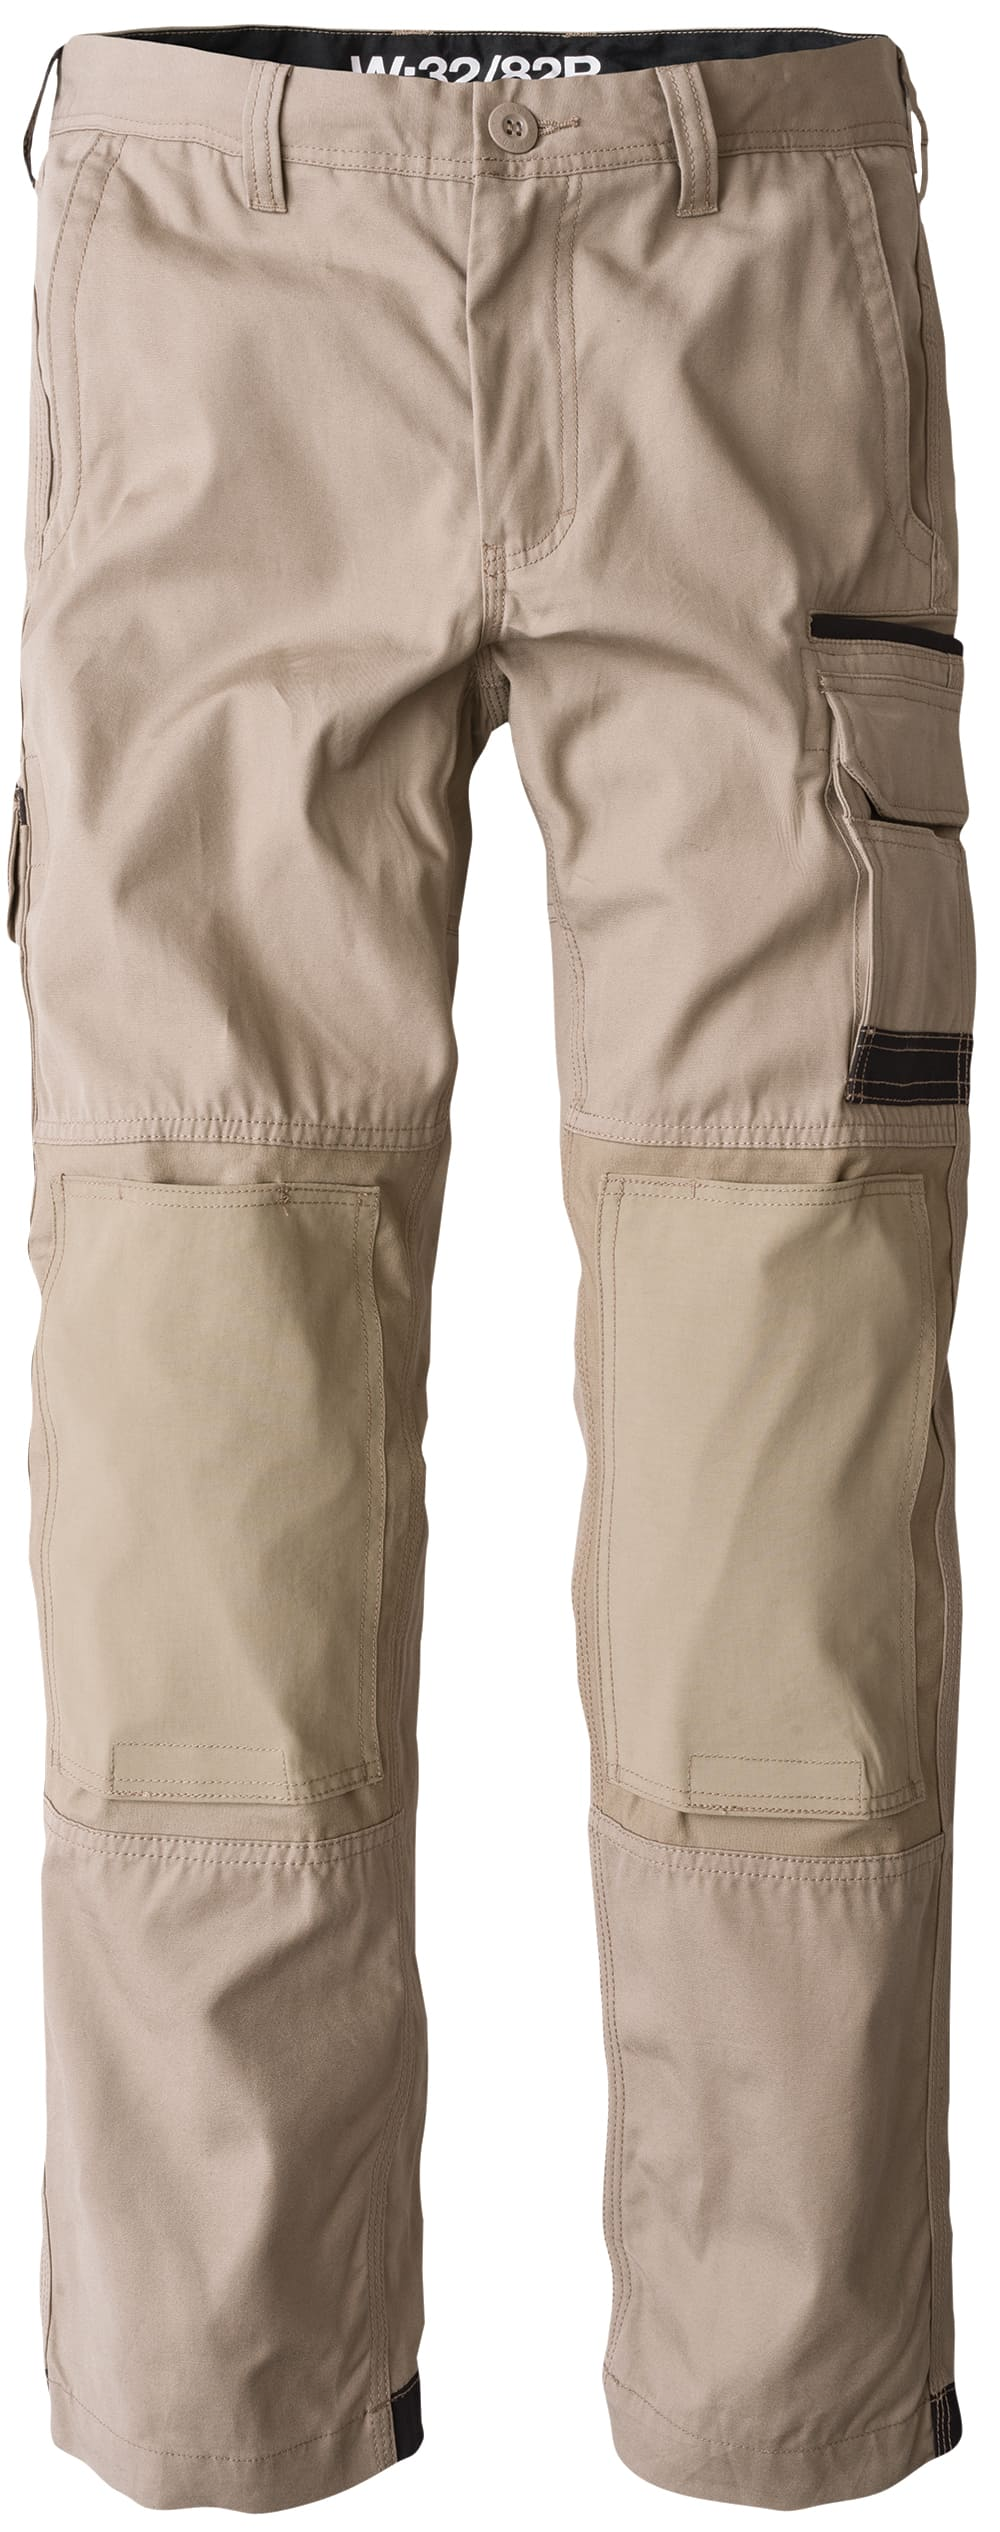 WP-1 FXD Standard weight Cotton Drill Cargo Pants KHAKI